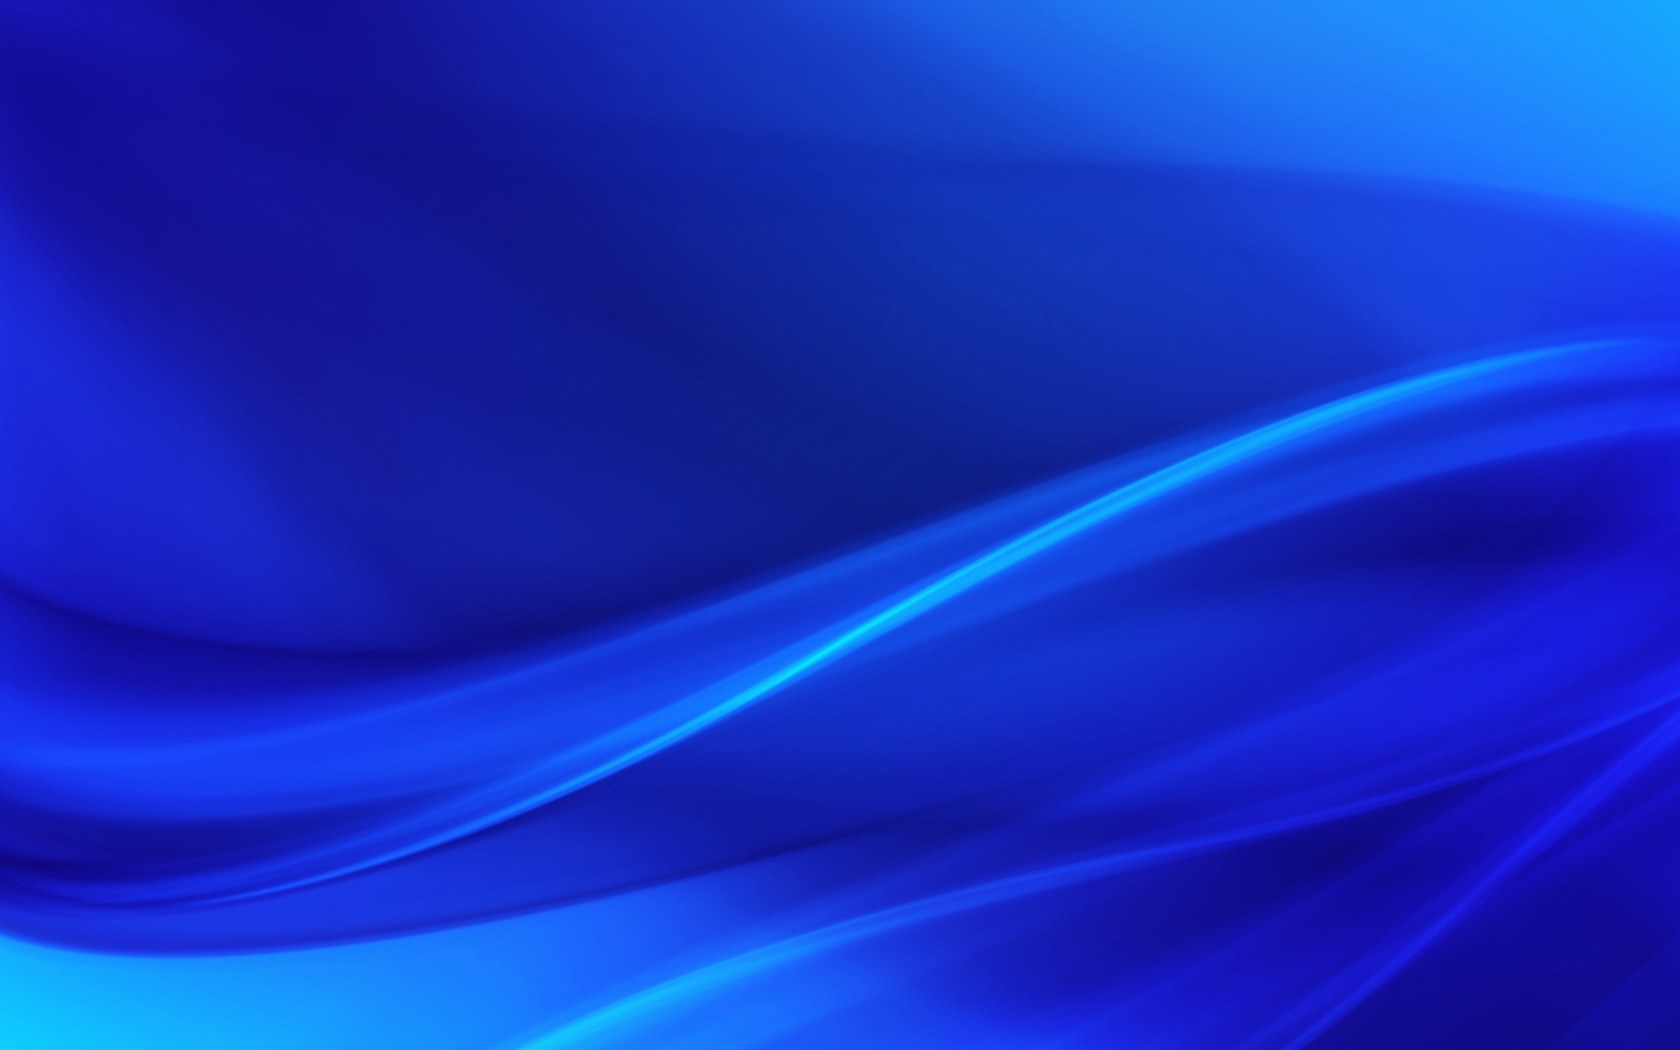 HD Abstract Blue Background   Blue Abstract Light Effect 16801050 NO 1680x1050